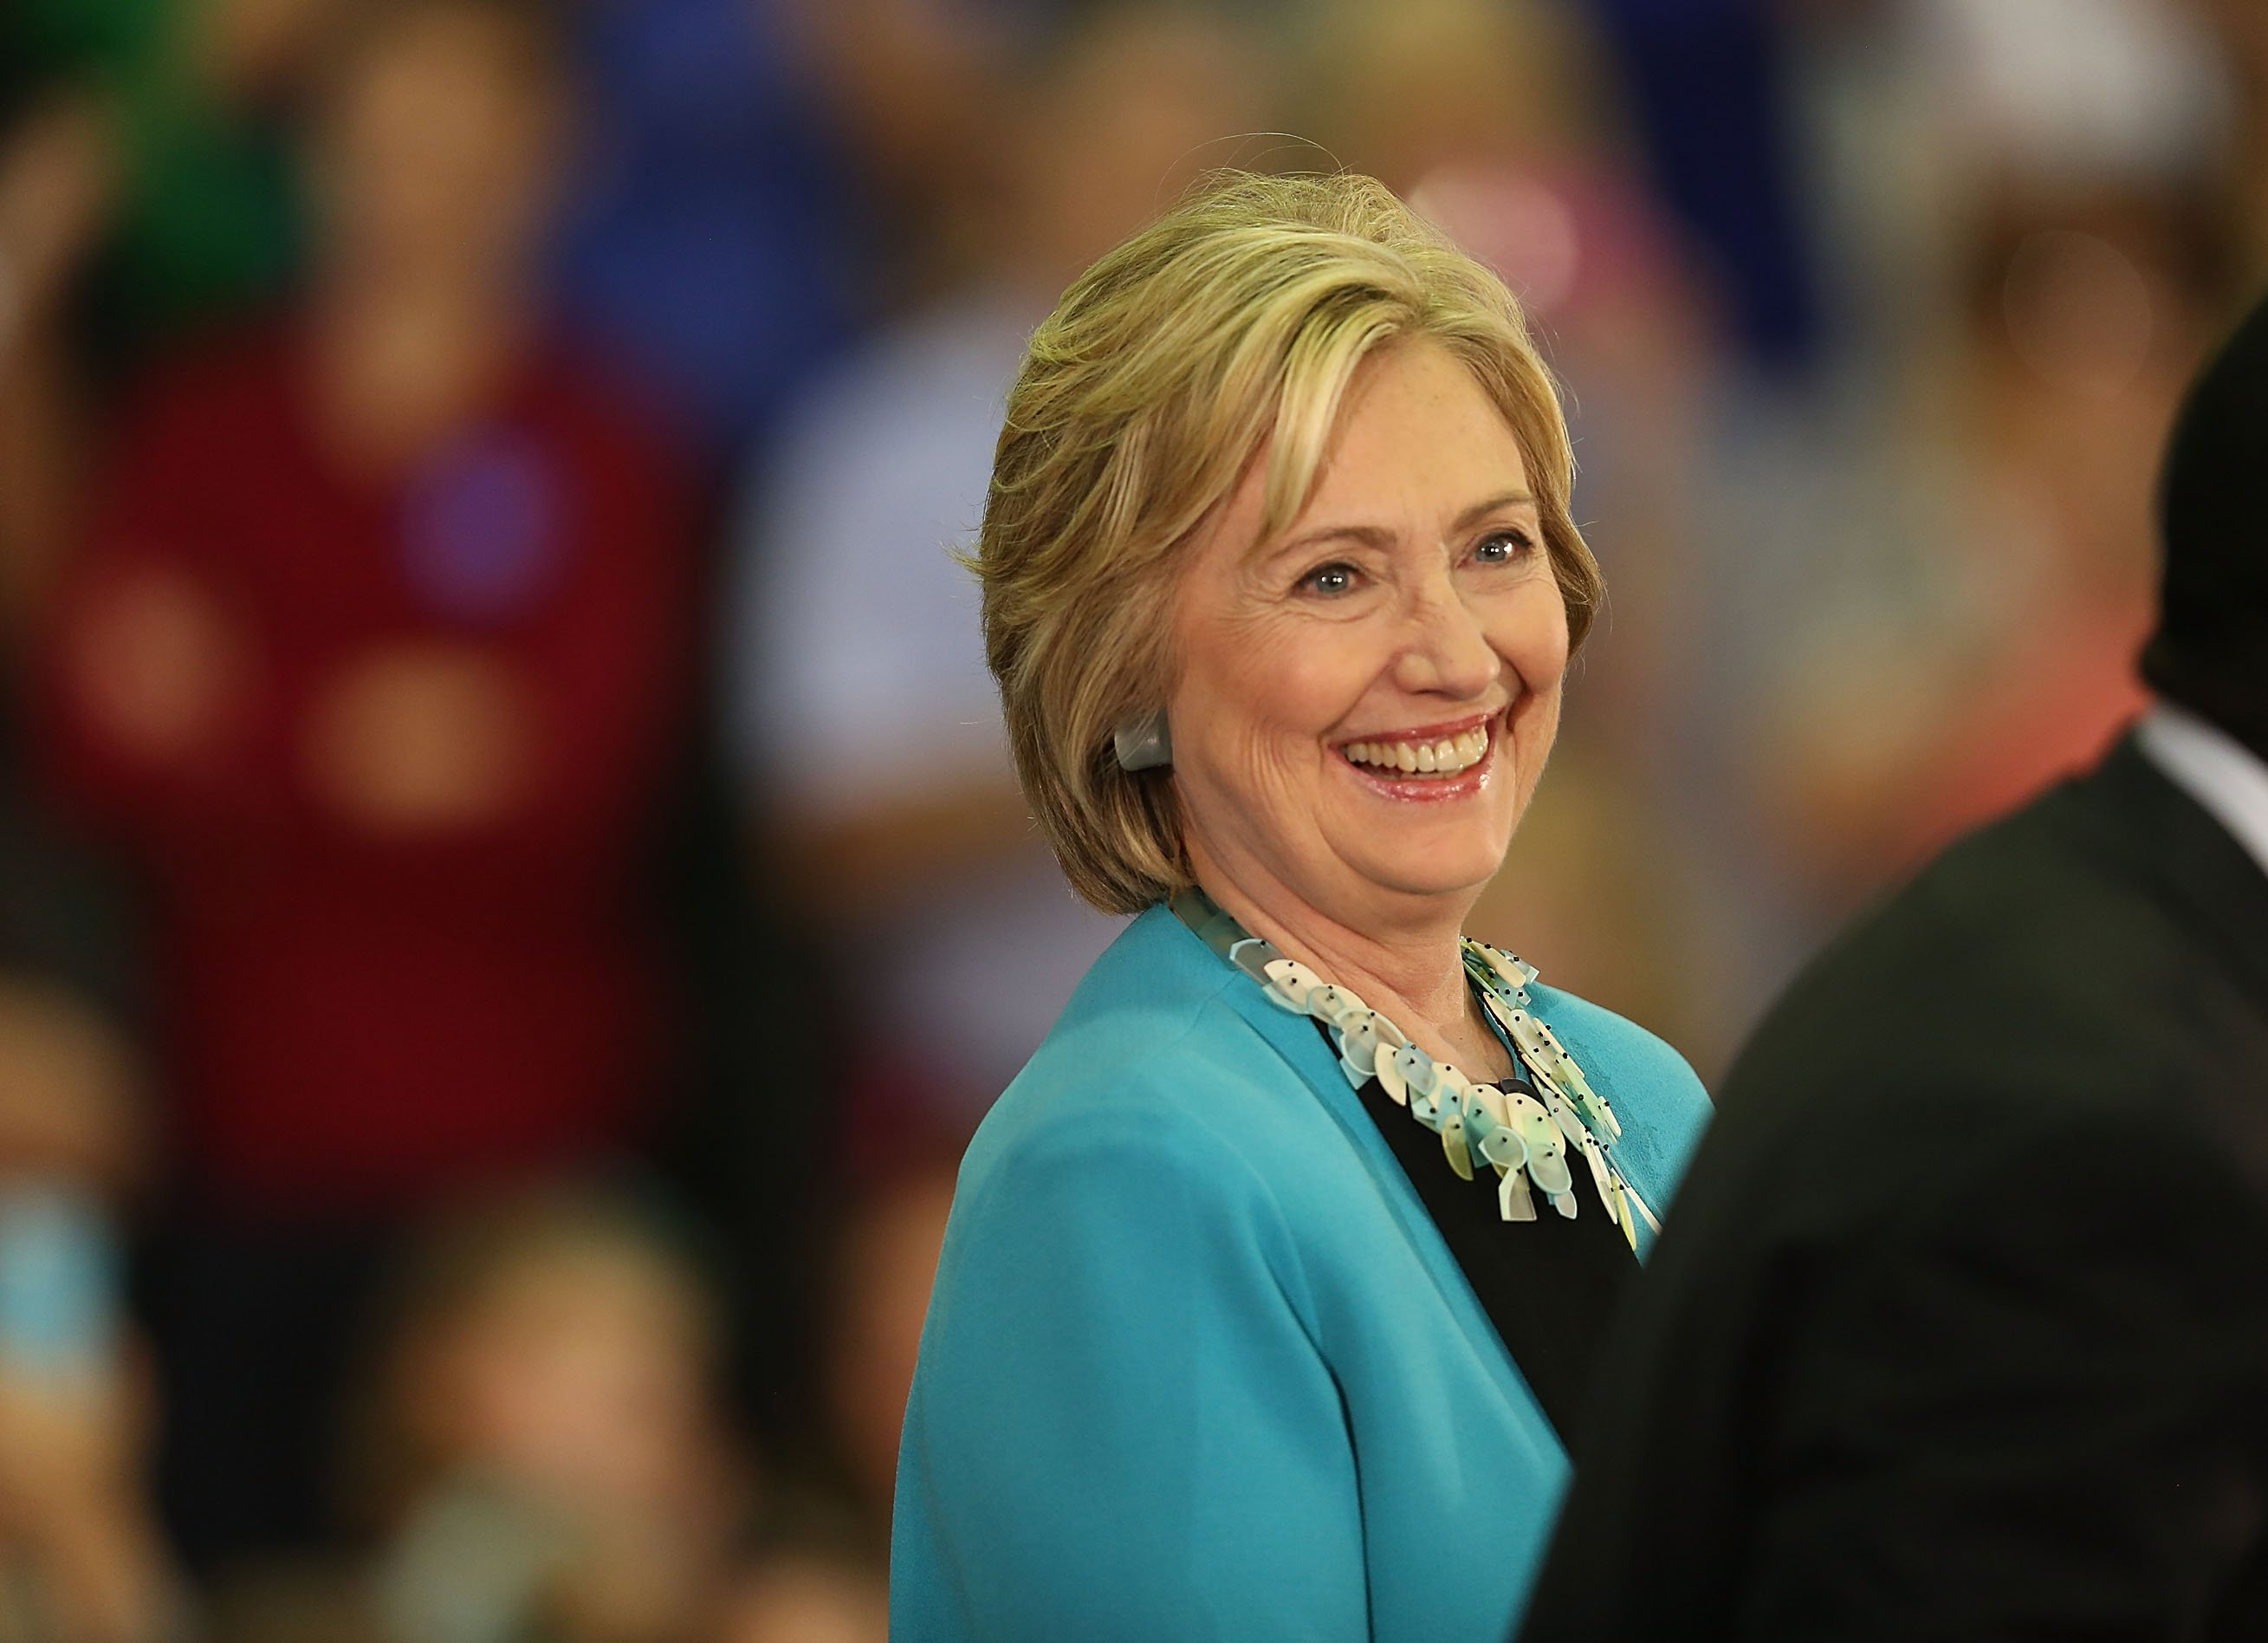 Hillary Clinton laughs as she is introduced during her campaign stop at the Broward College – Hugh Adams Central Campus on October 2, 2015 in Davie, Florida.